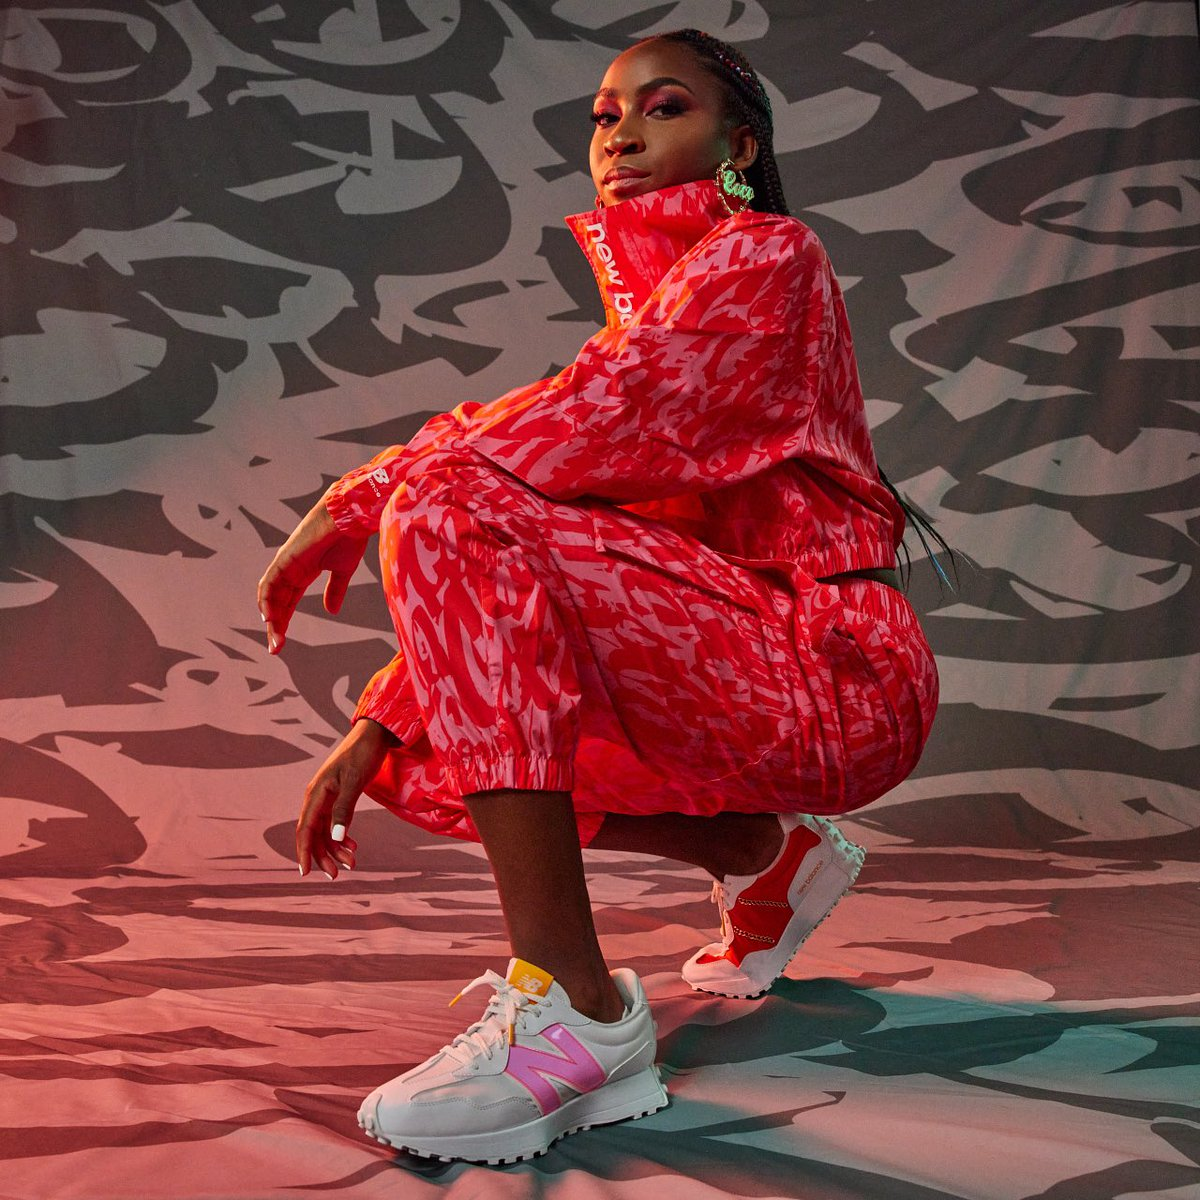 The @CocoGauff collection serving up '90s style. Available now: shop.newbal.co/tennis